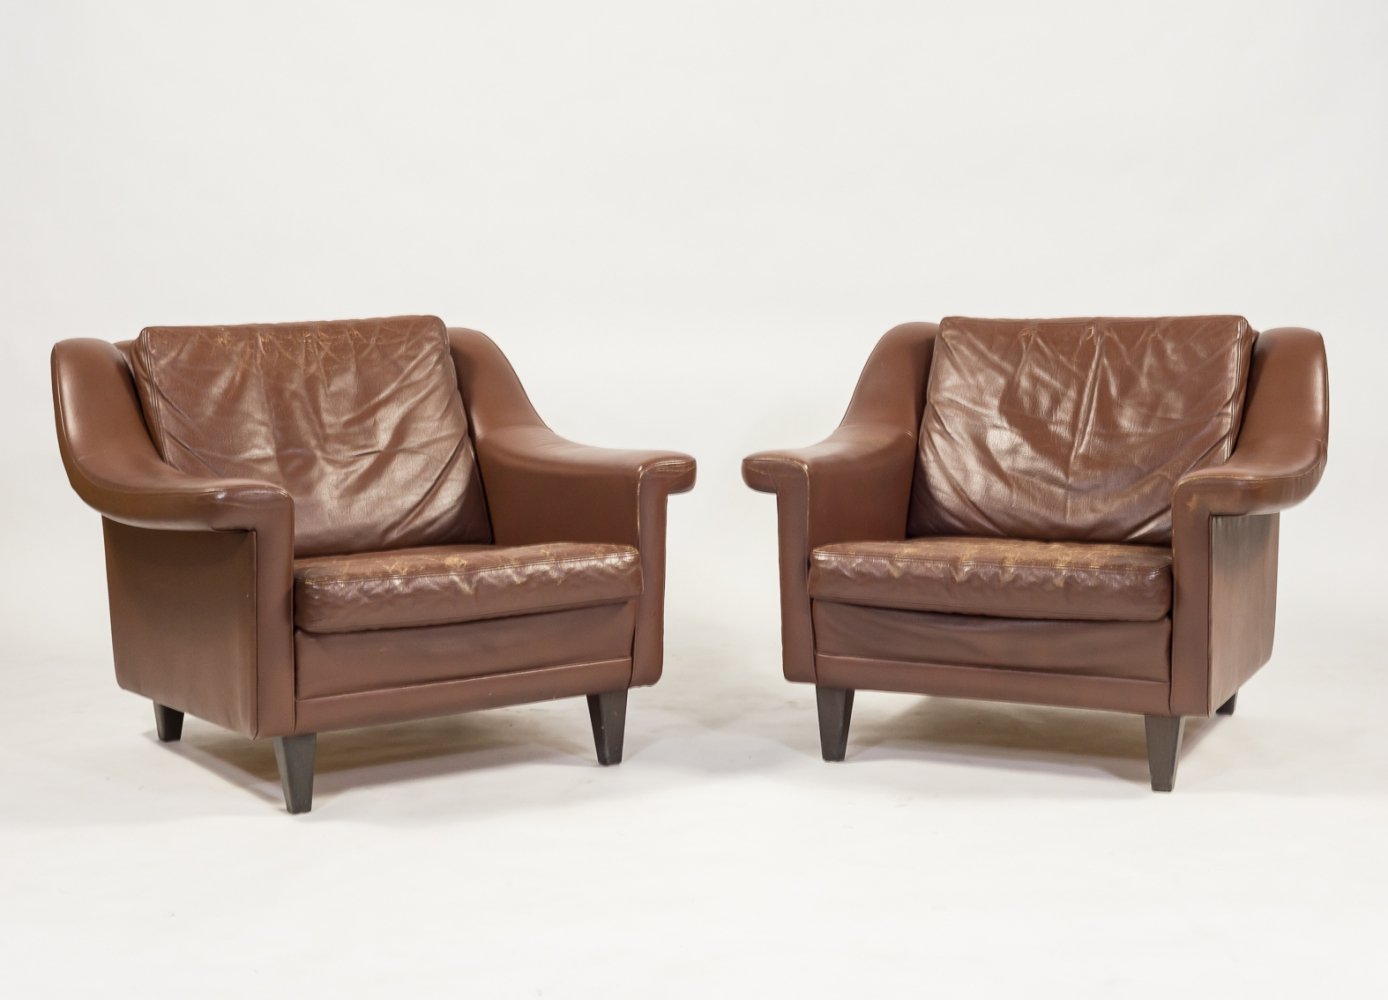 Set of two Danish Architectural mid-century armchairs